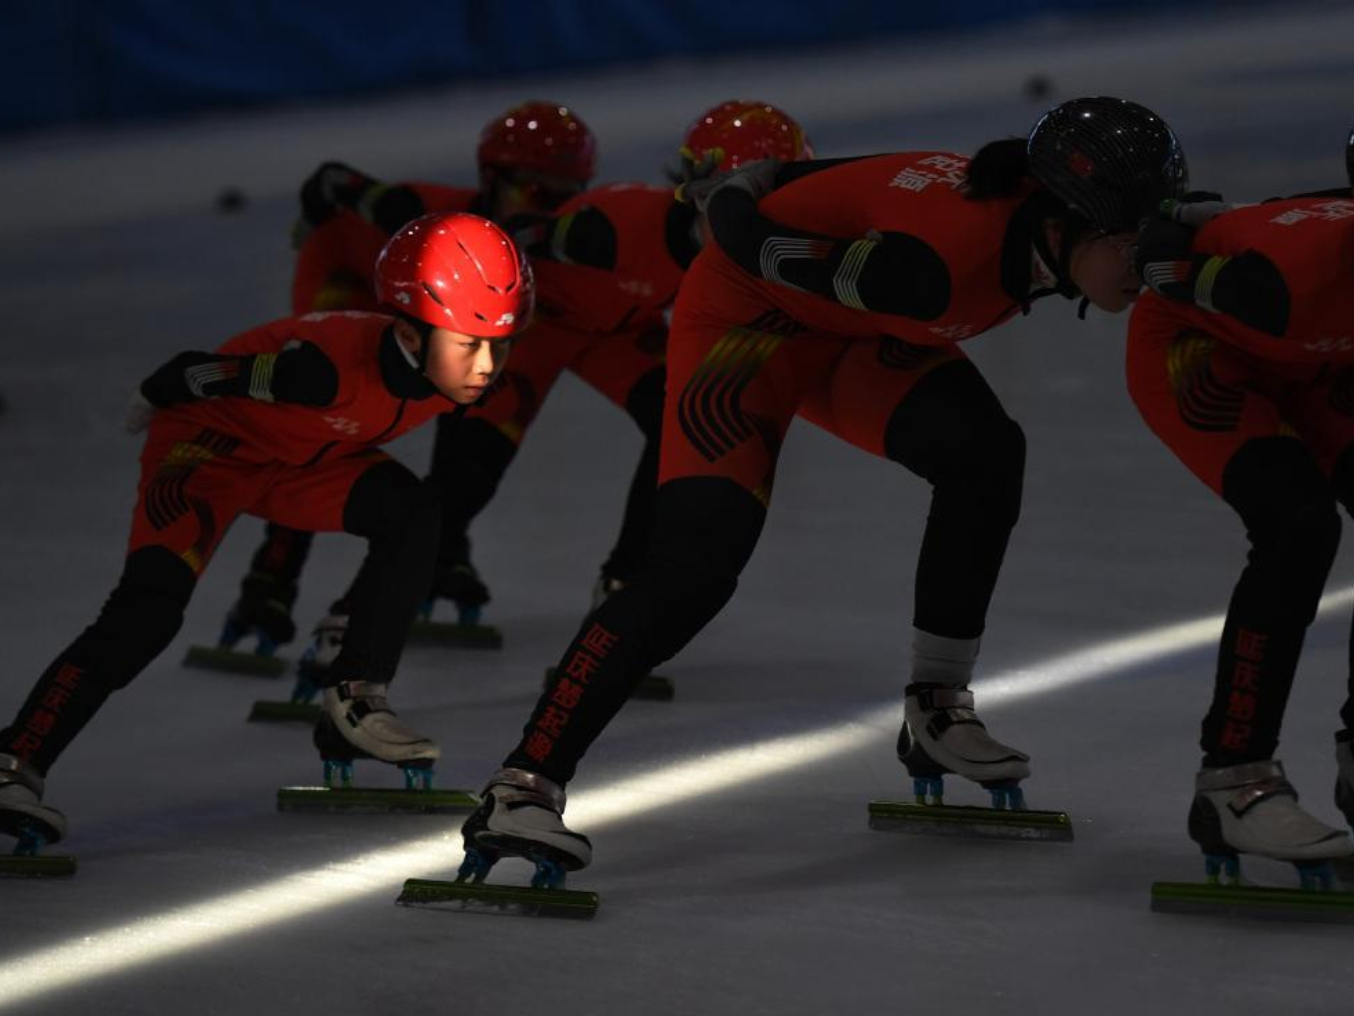 Ice sports right on track in Yanqing, Beijing